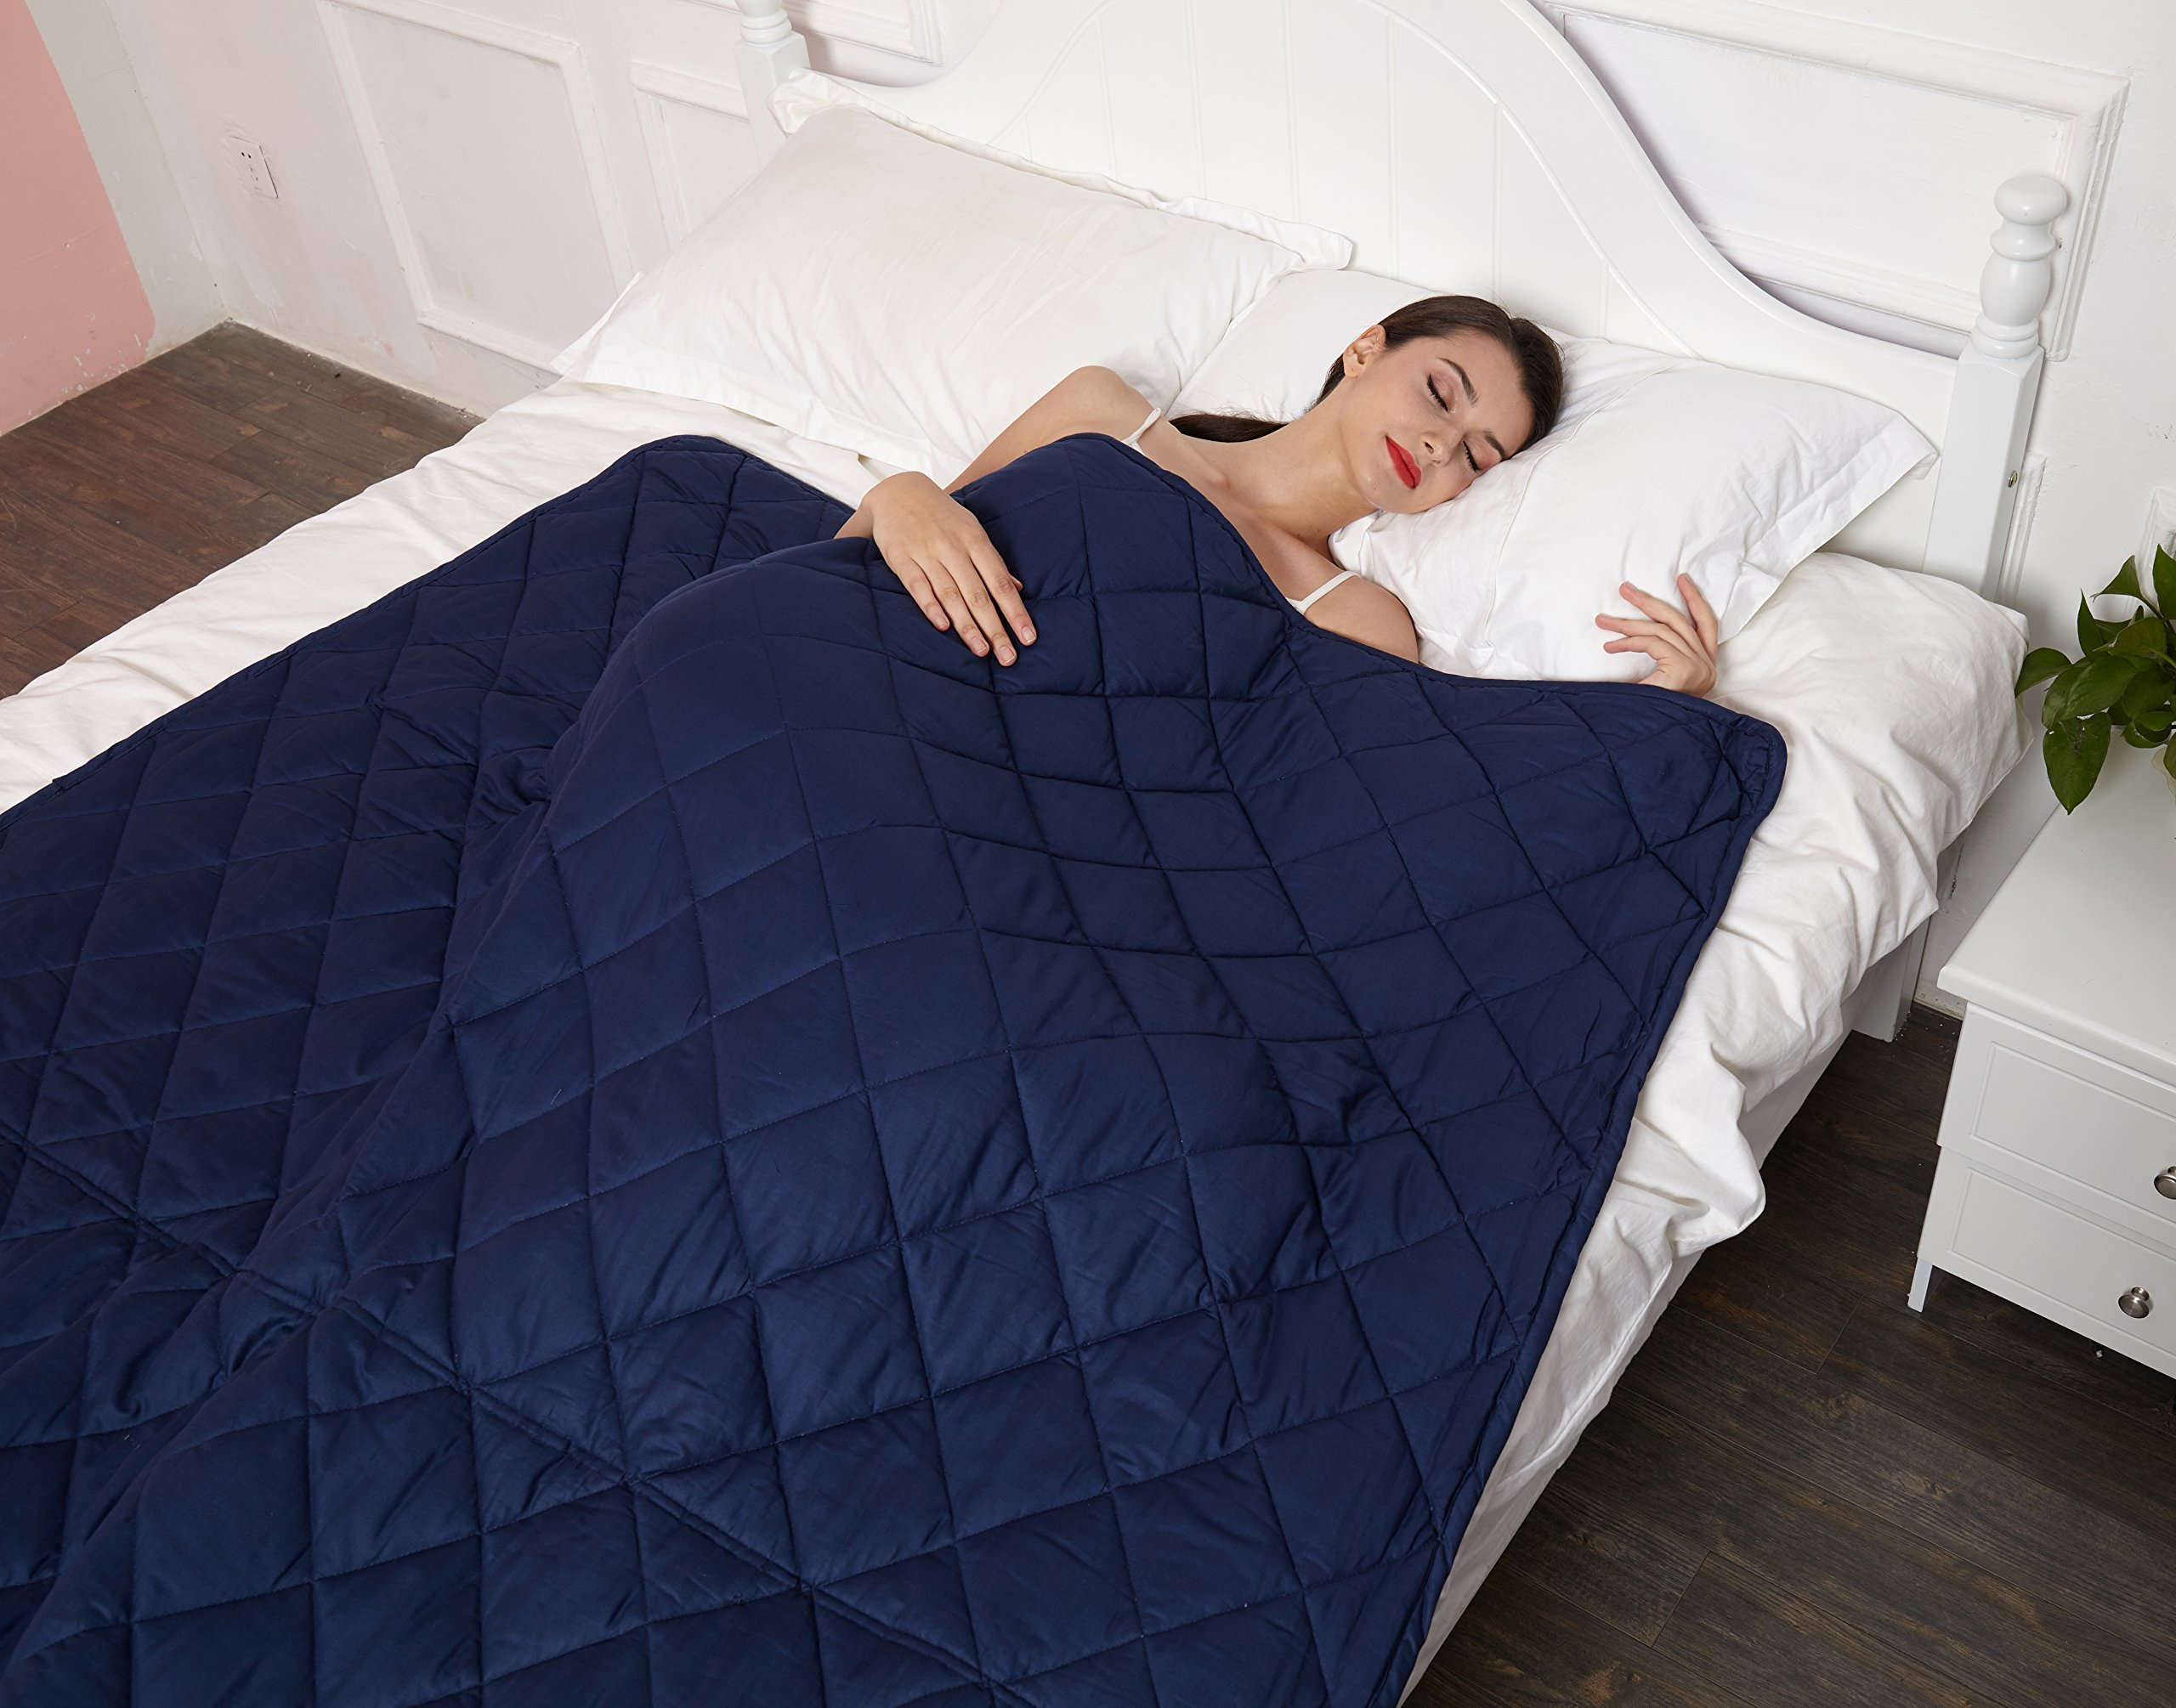 New Version Weighted Blanket by Hypnoser for Child and Adults,Navy Blue,48''x72''-20 lbs for 150-200 lbs,Providing Calm and Comforting Sleep, Great for Anxiety,Insomnia, ADHD, Autism, OCD and SPD